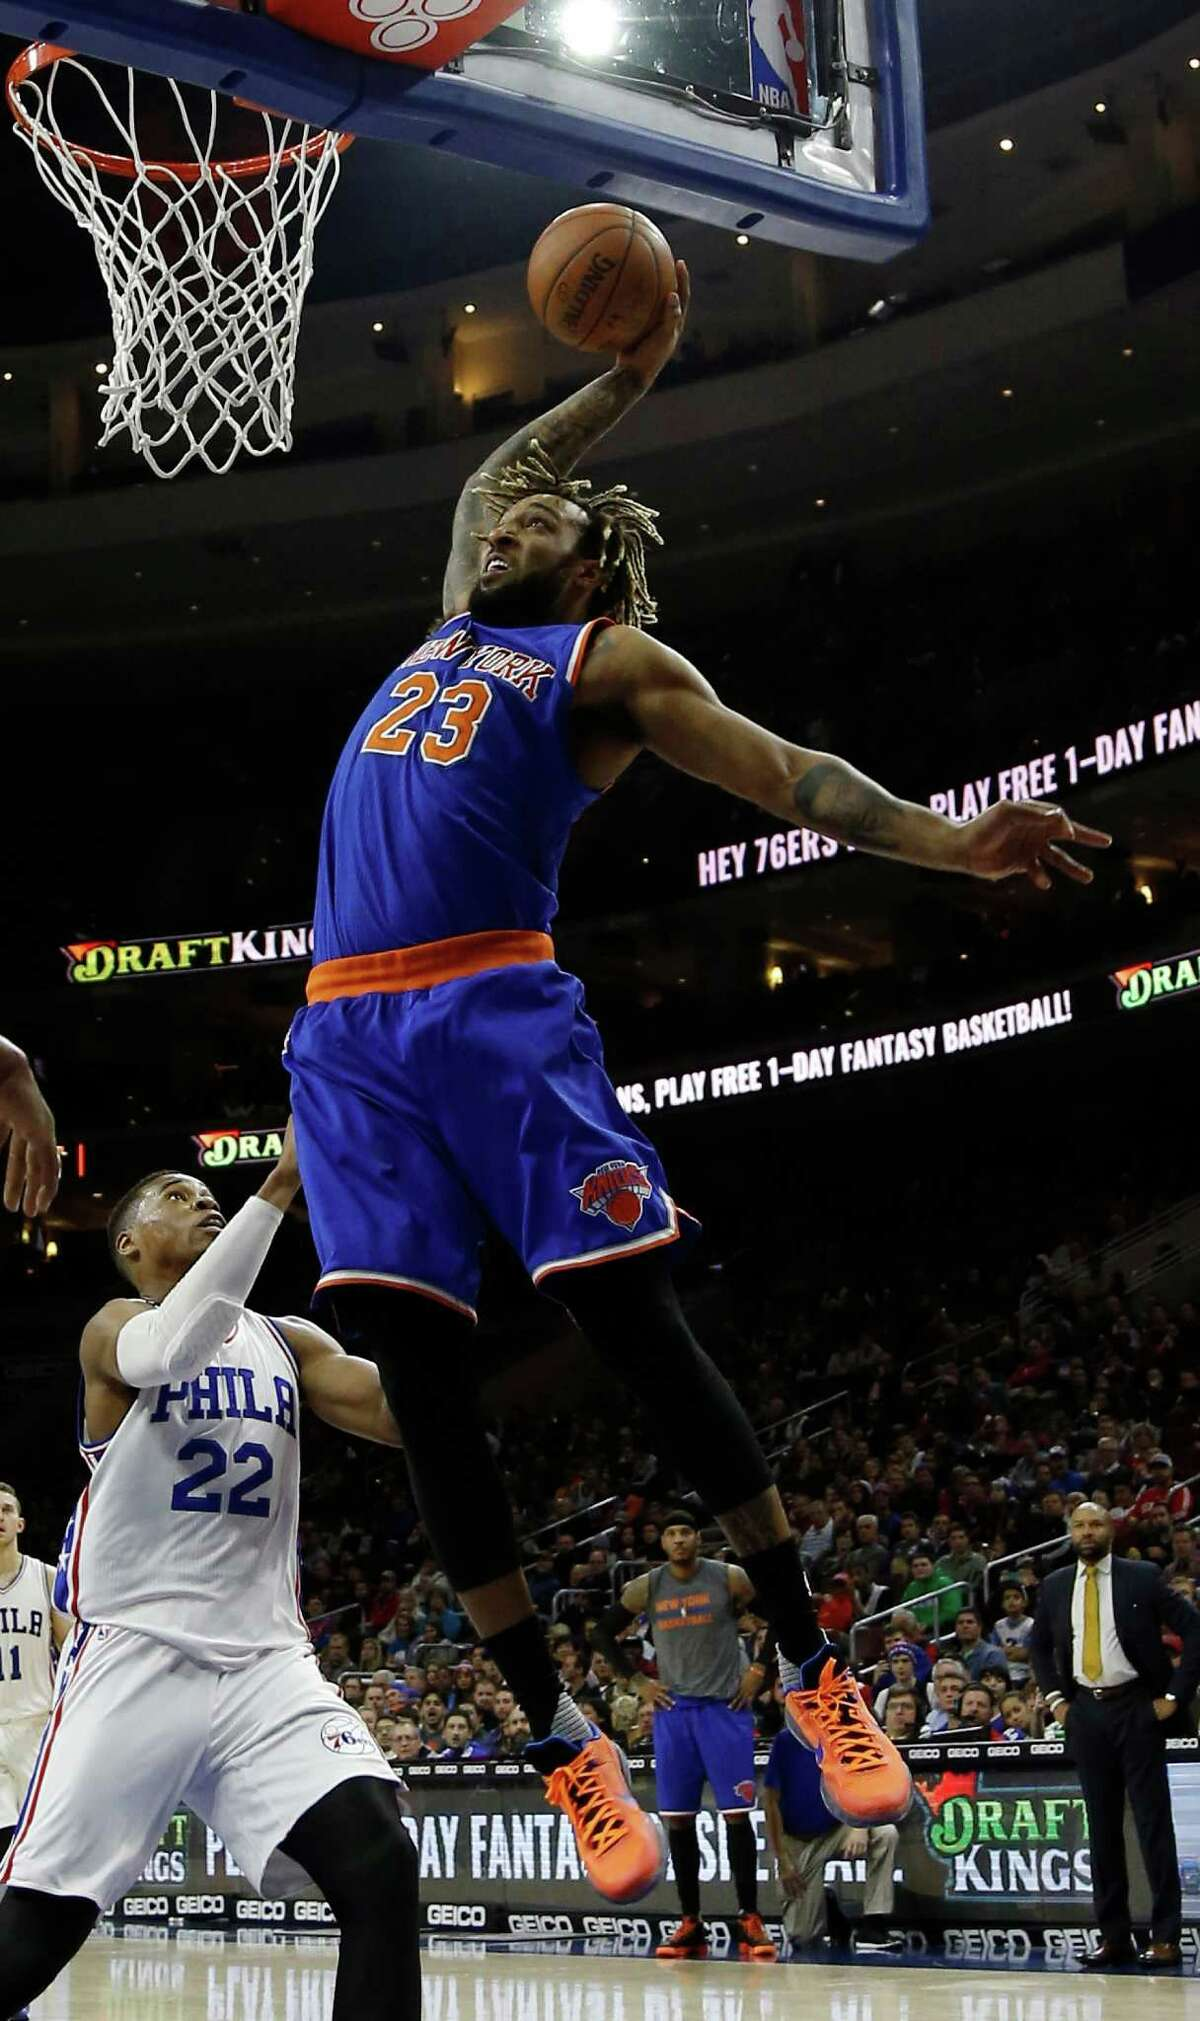 New York Knicks' Derrick Williams, right, goes up for a dunk against Philadelphia 76ers' Richaun Holmes during the first half of an NBA basketball game, Friday, Dec. 18, 2015, in Philadelphia. (AP Photo/Matt Slocum) ORG XMIT: PXC105